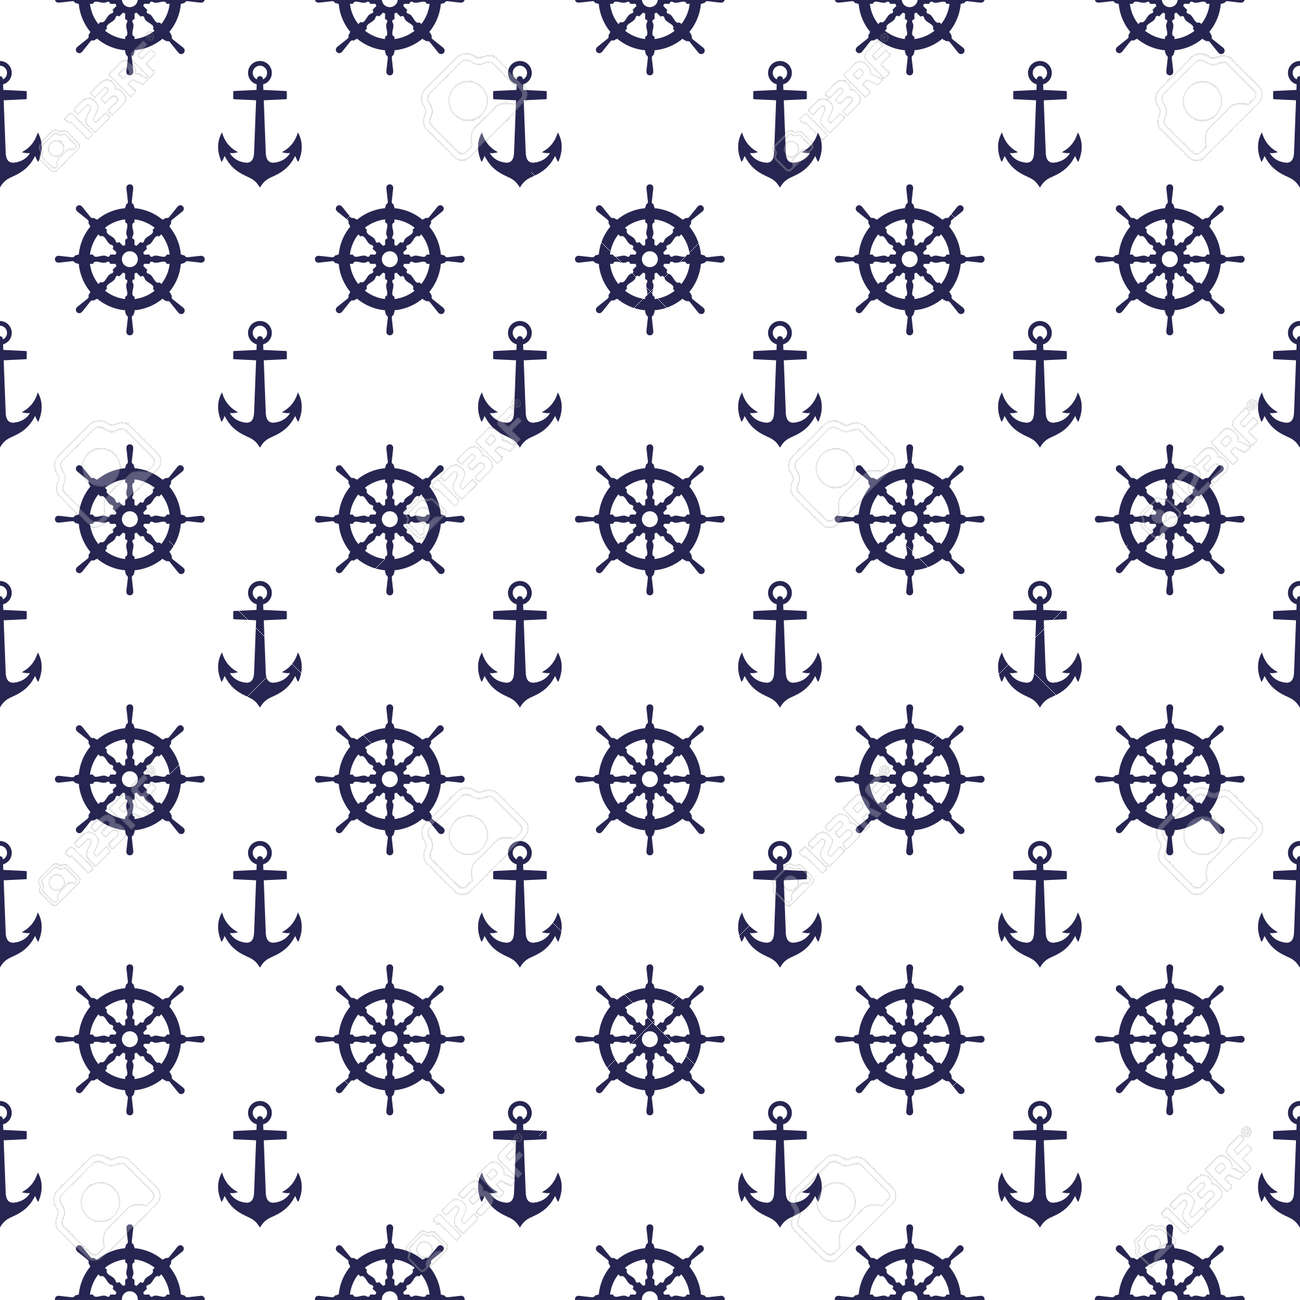 Seamless nautical pattern with anchors and steering wheels. Design element for wallpapers - 171414901